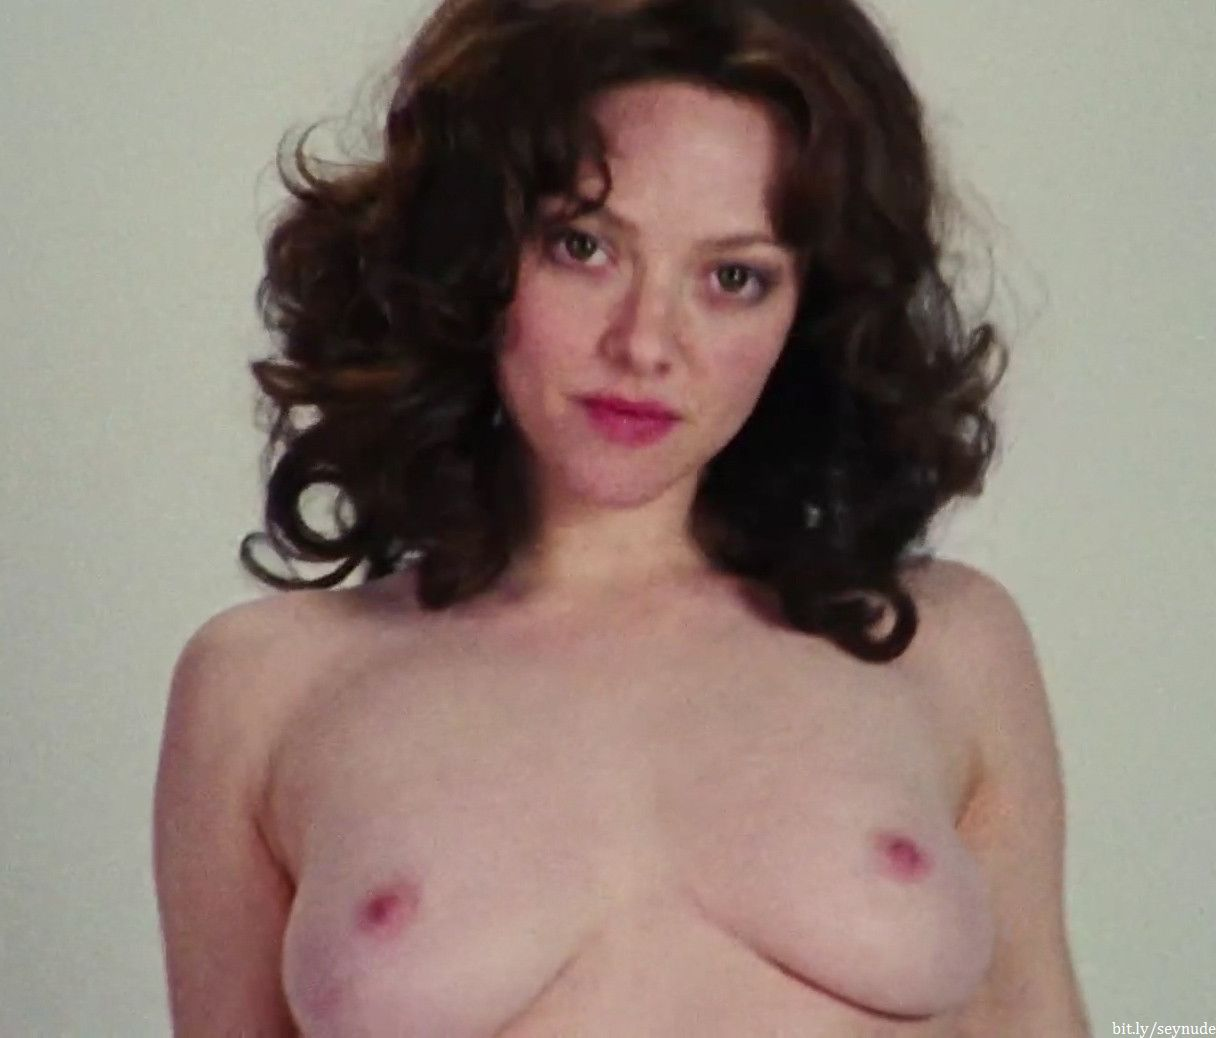 Thanks for free nude pics of linda lovelace